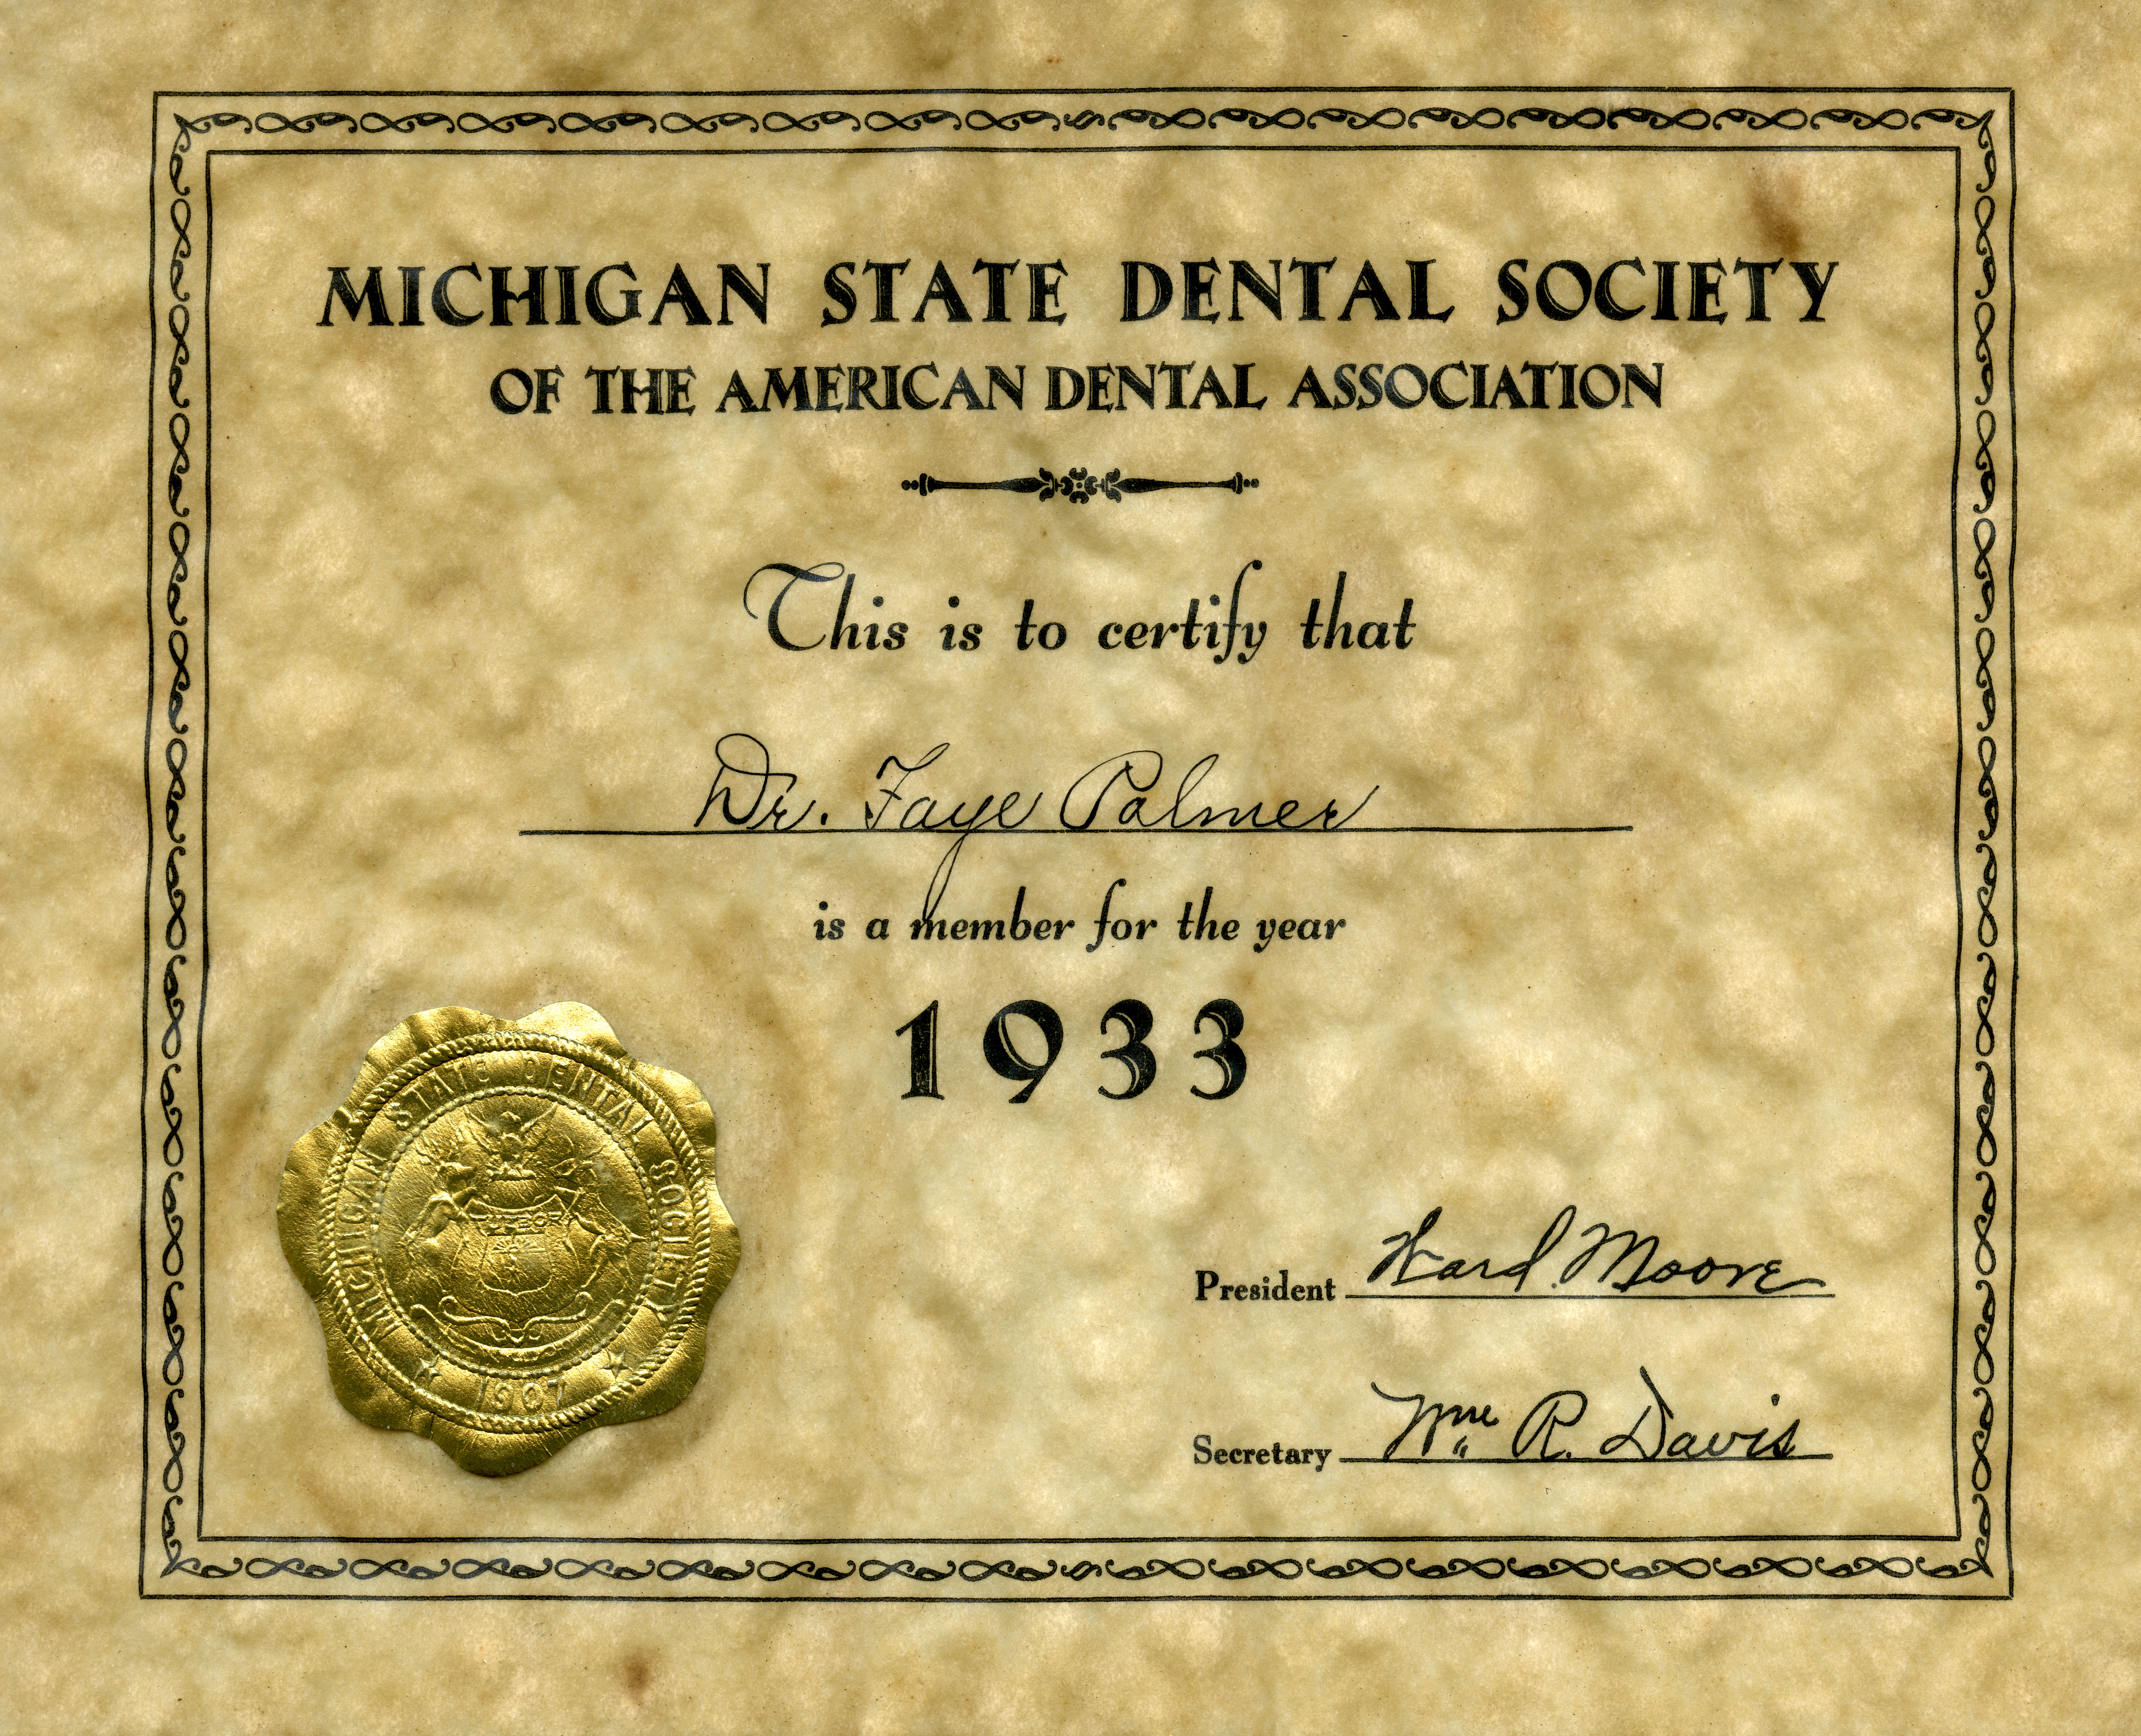 A membership certificate from the Michigan State Dental Society-1933